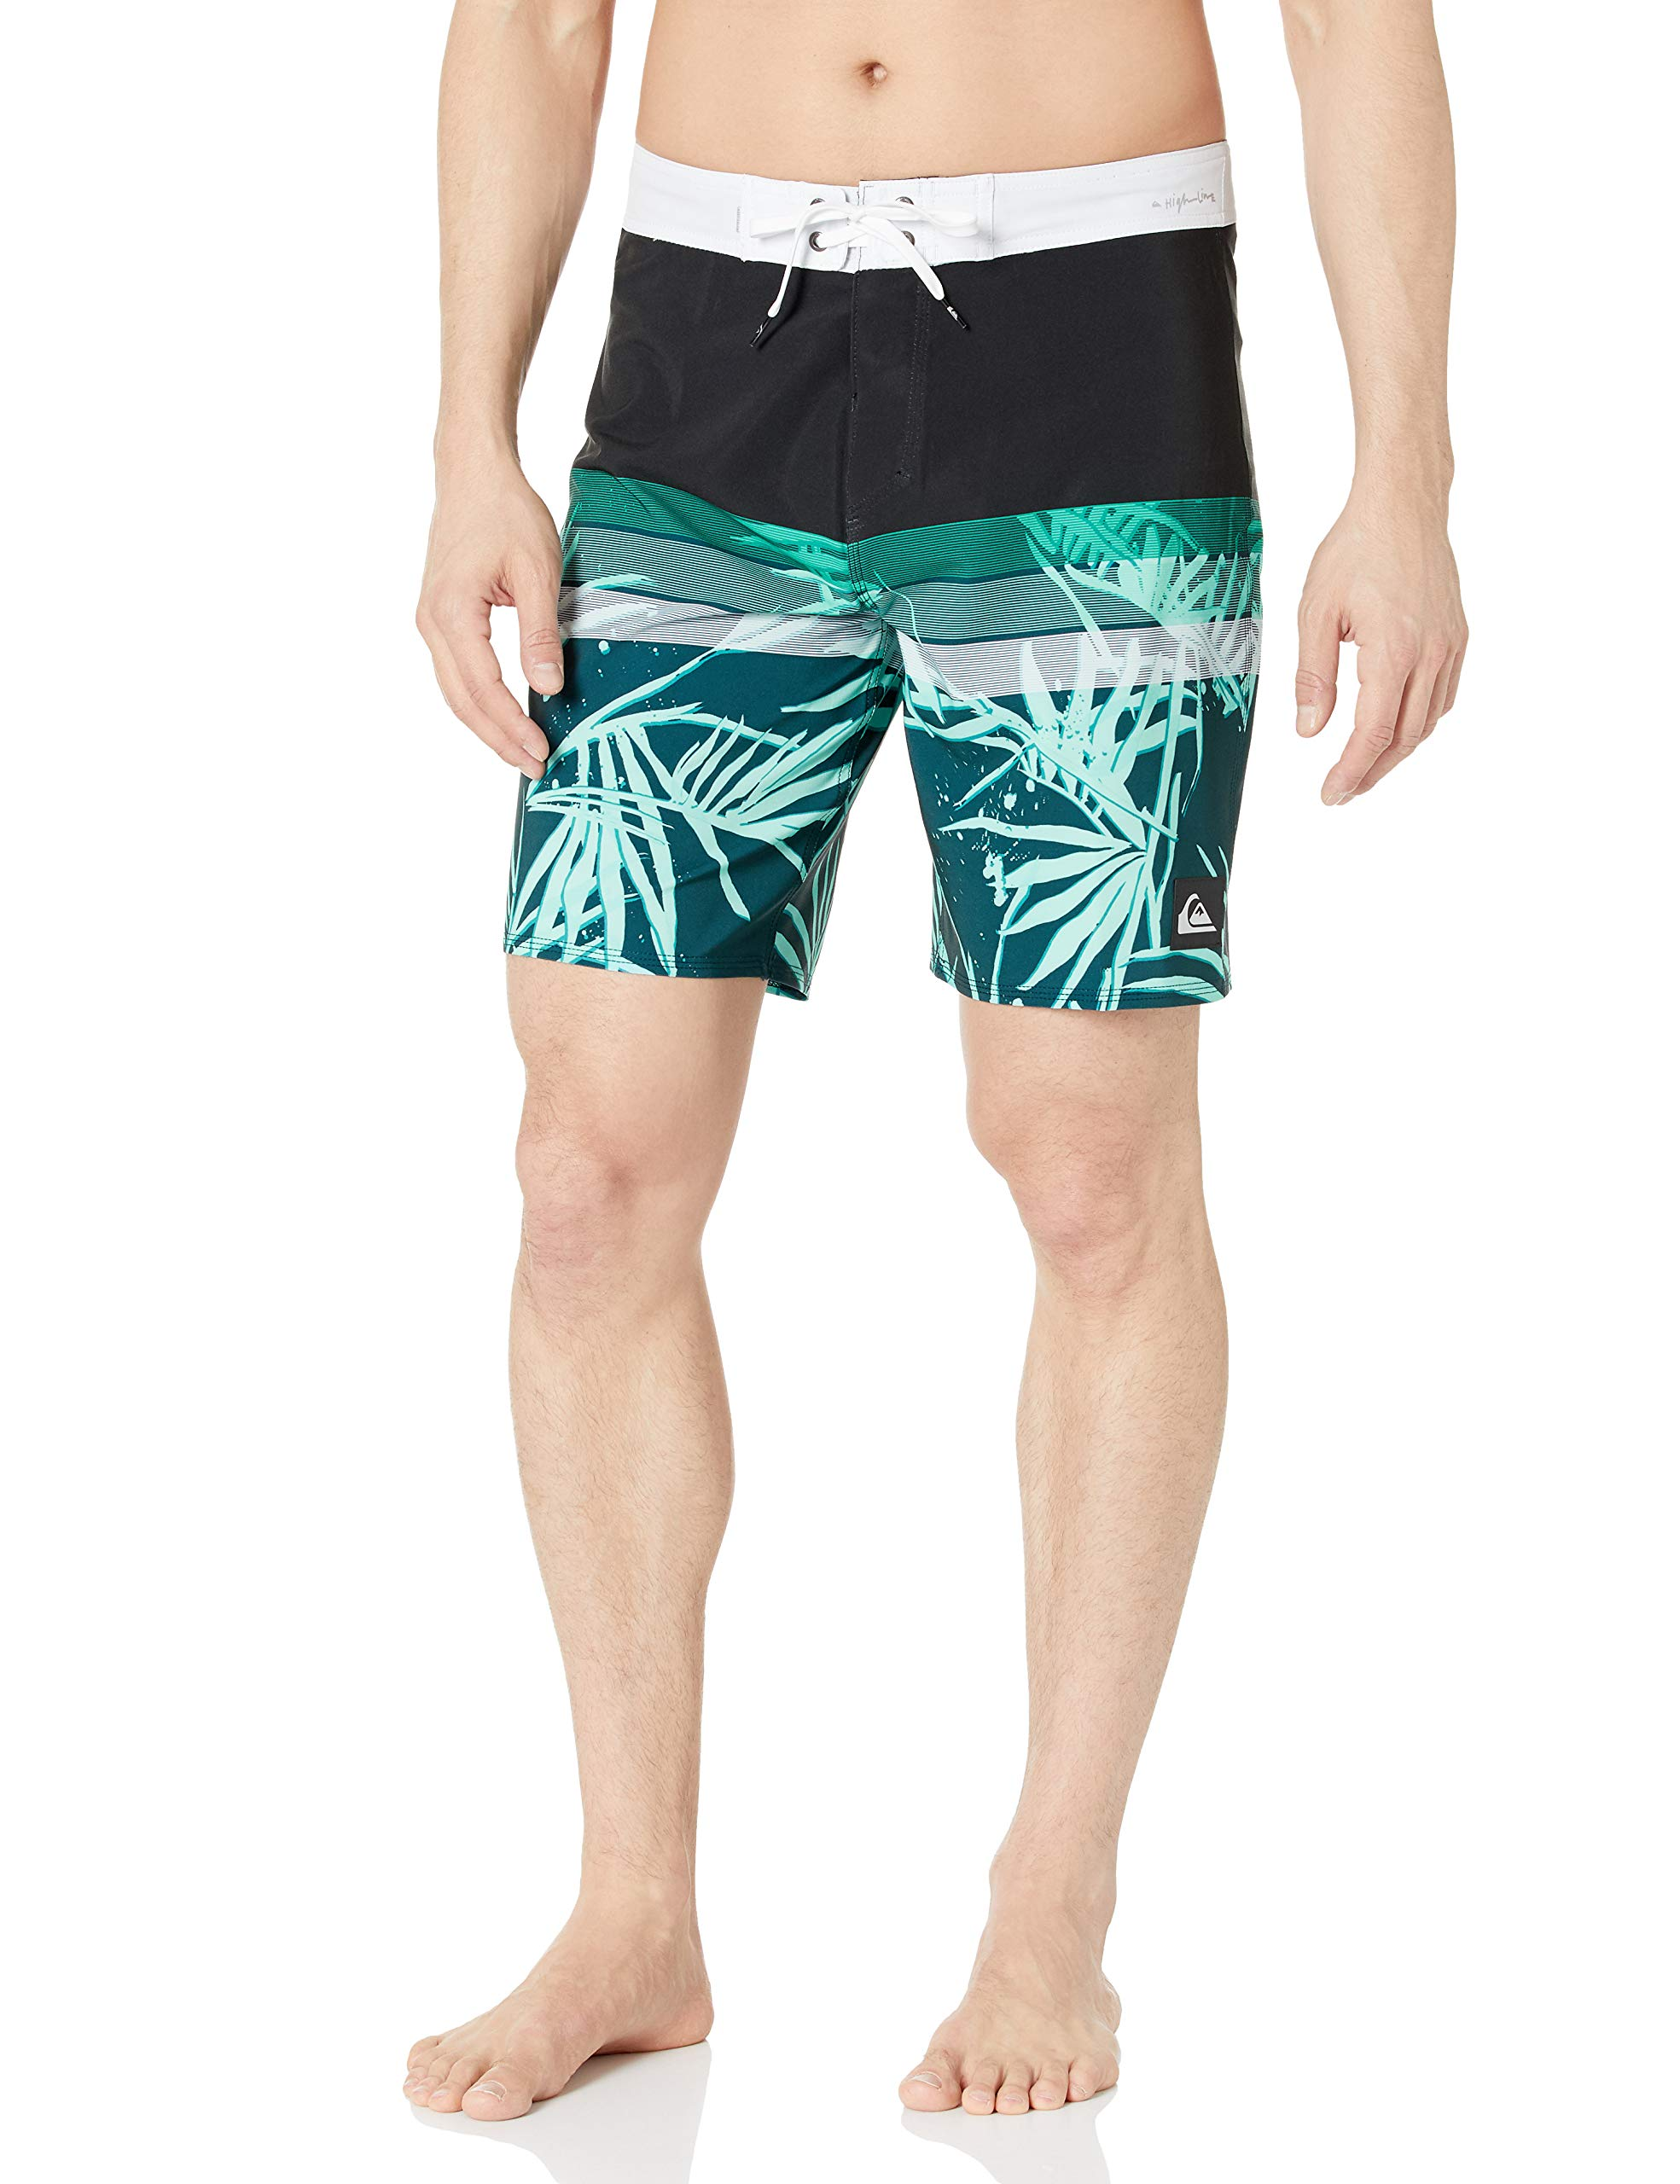 Quiksilver Men's Highline Jungle Vision 19 Boardshort Swim Trunk